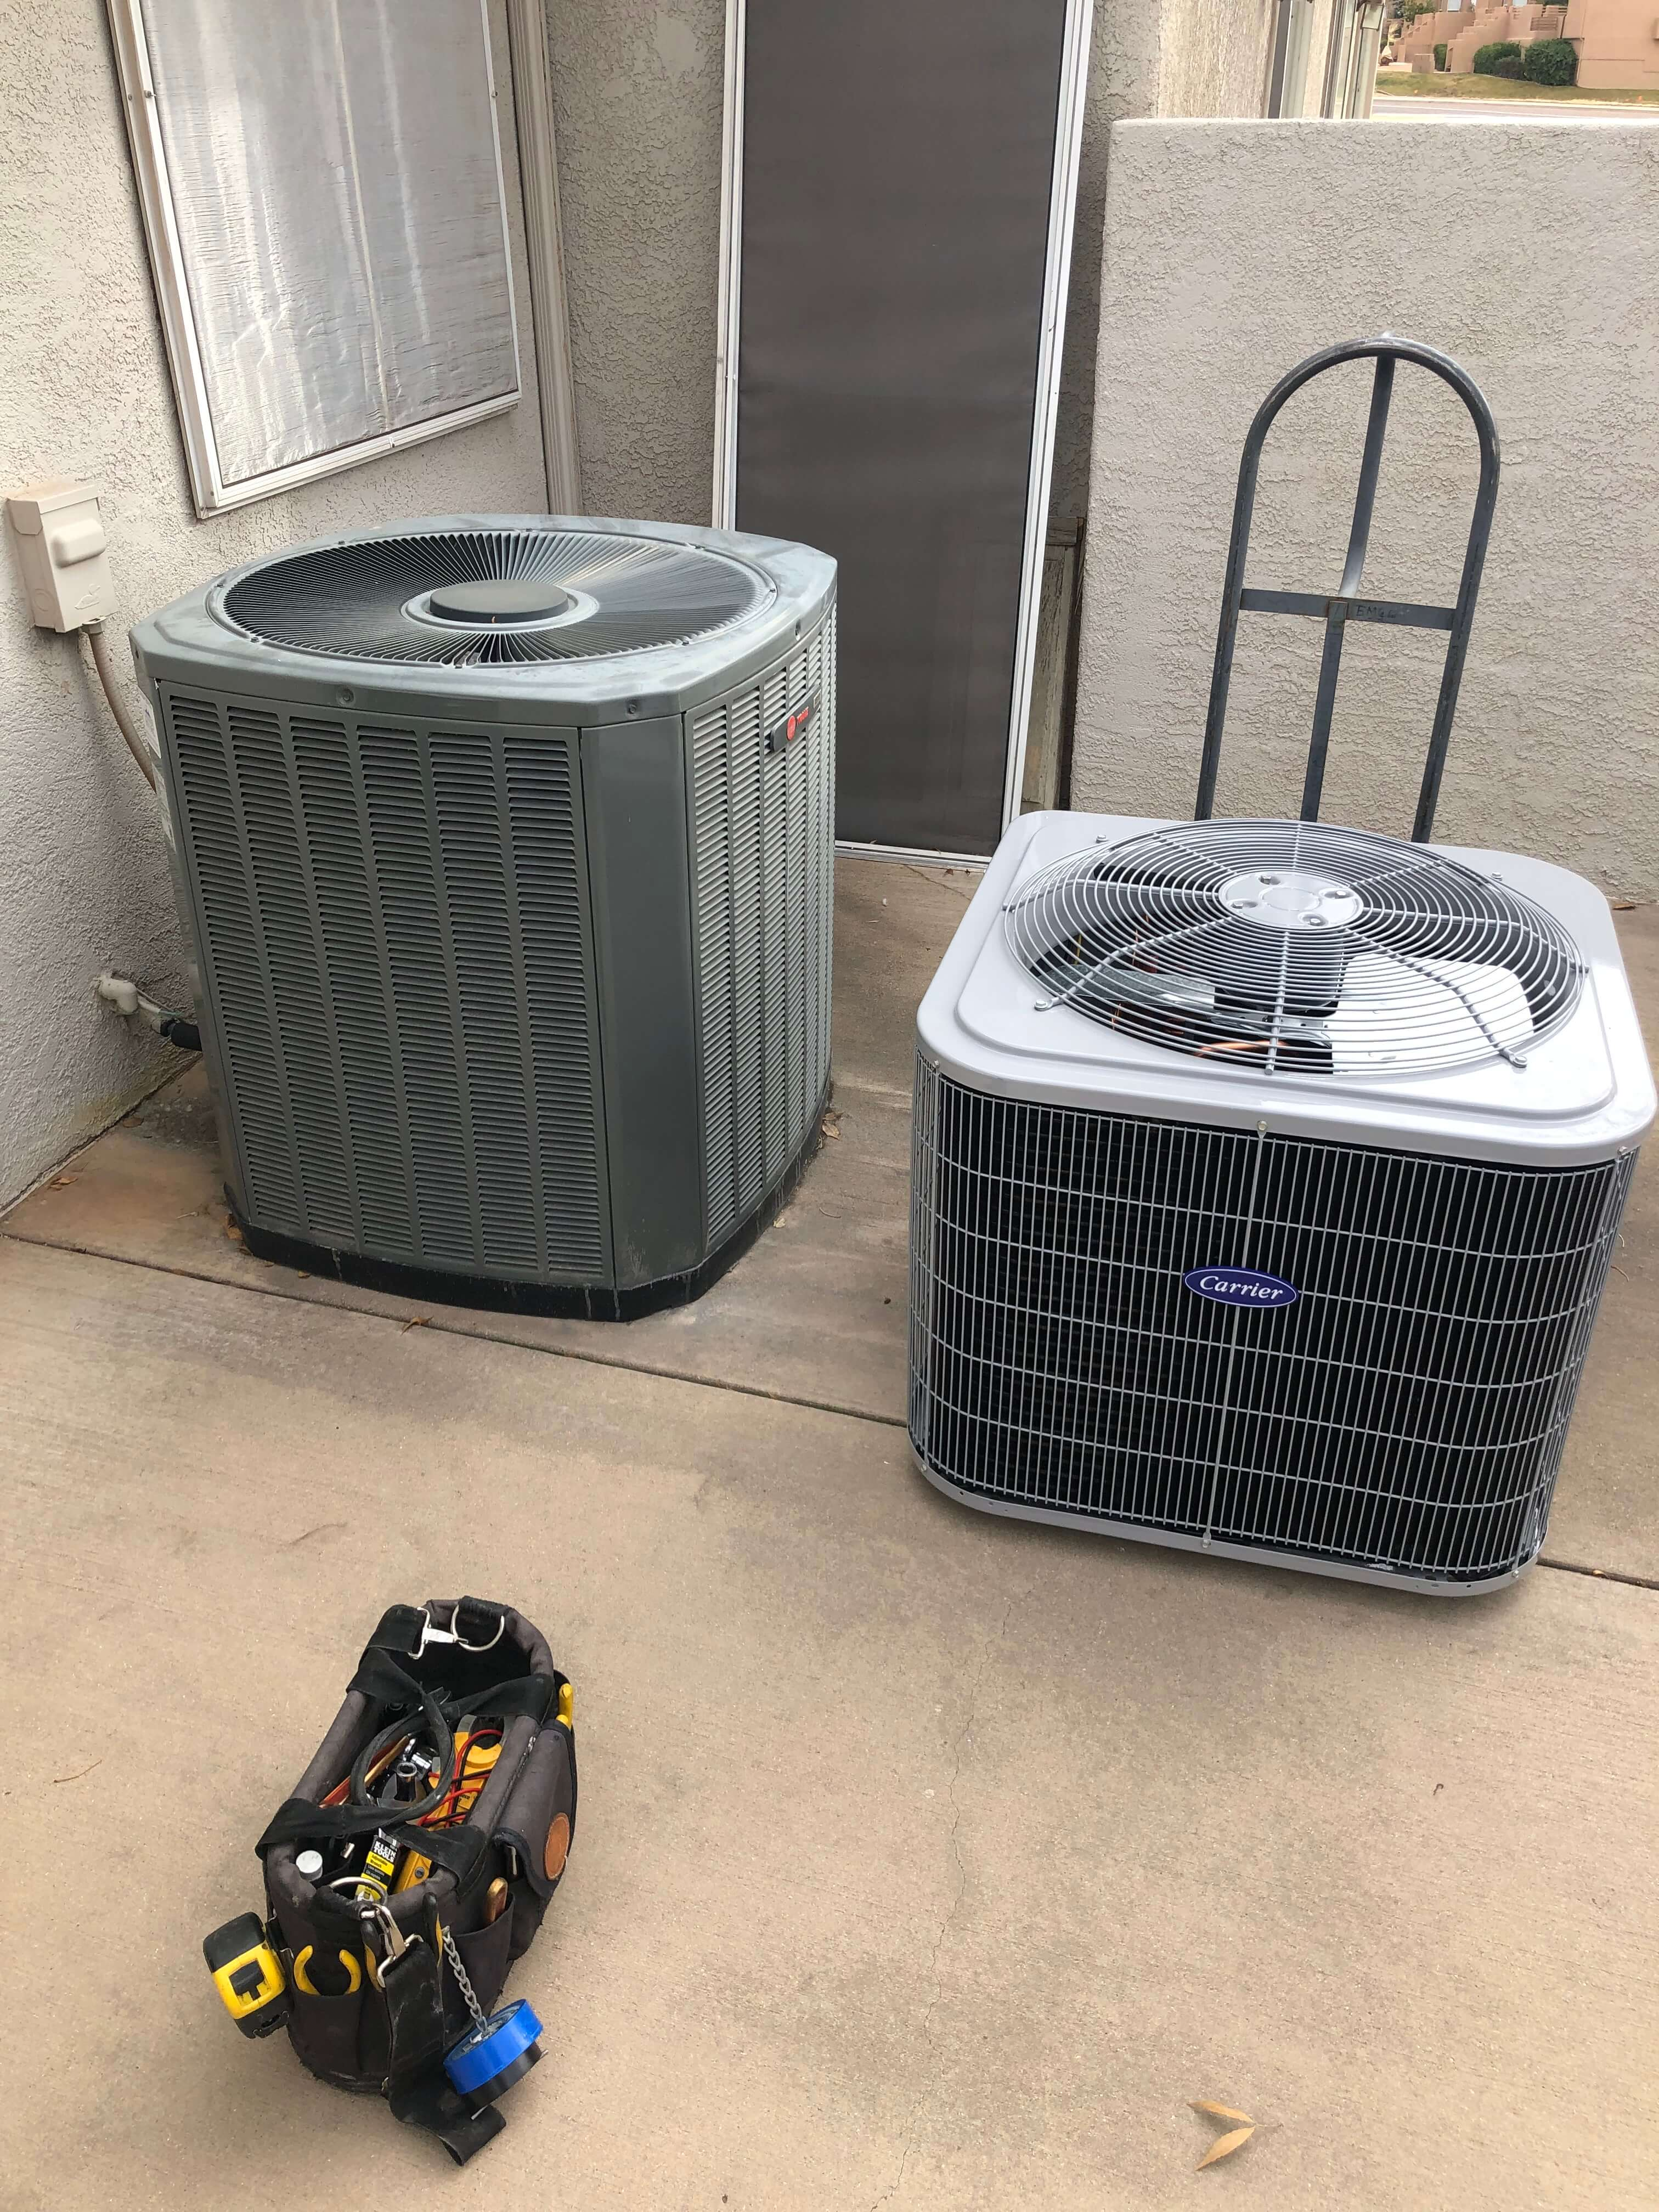 New Condenser Install St. George Utah